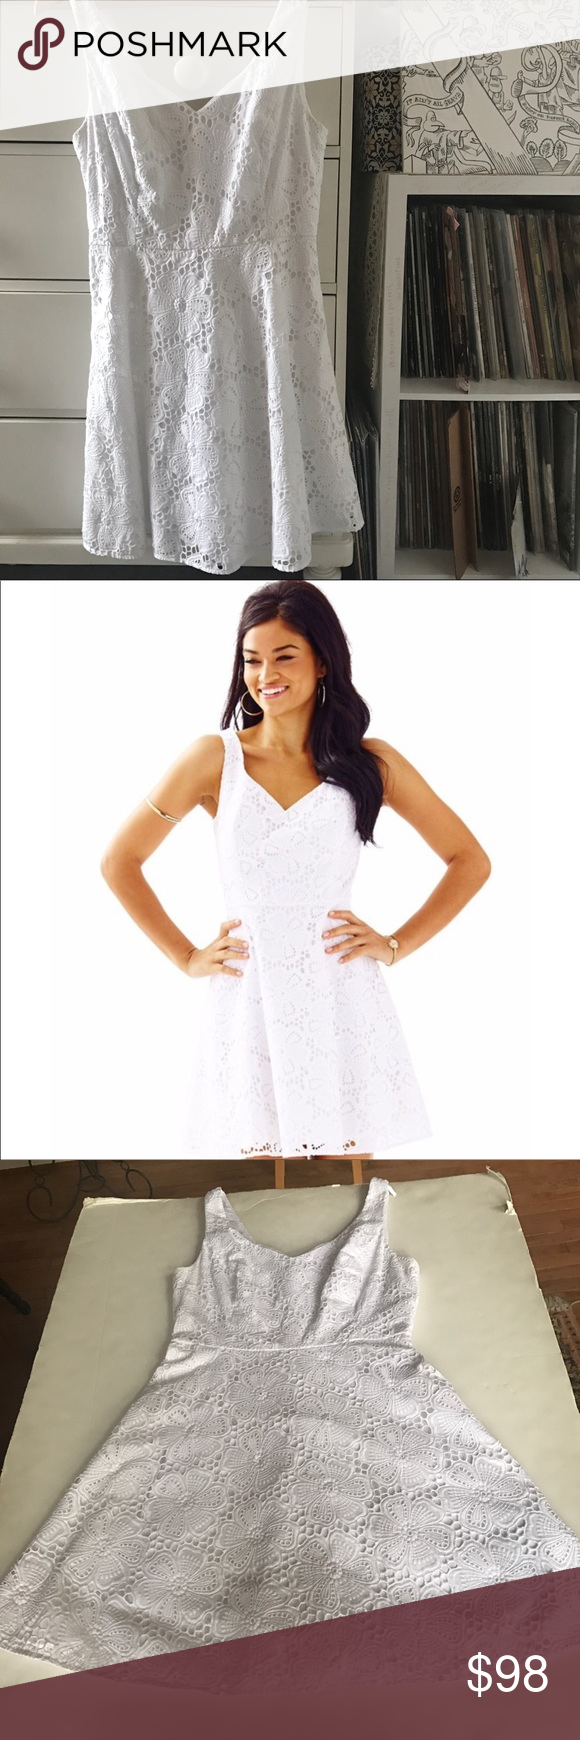 66709338408af1 Lilly All White Dress Lilly Pulitzer Marla dress V neck Eyelet lace Floral  pattern Double lined